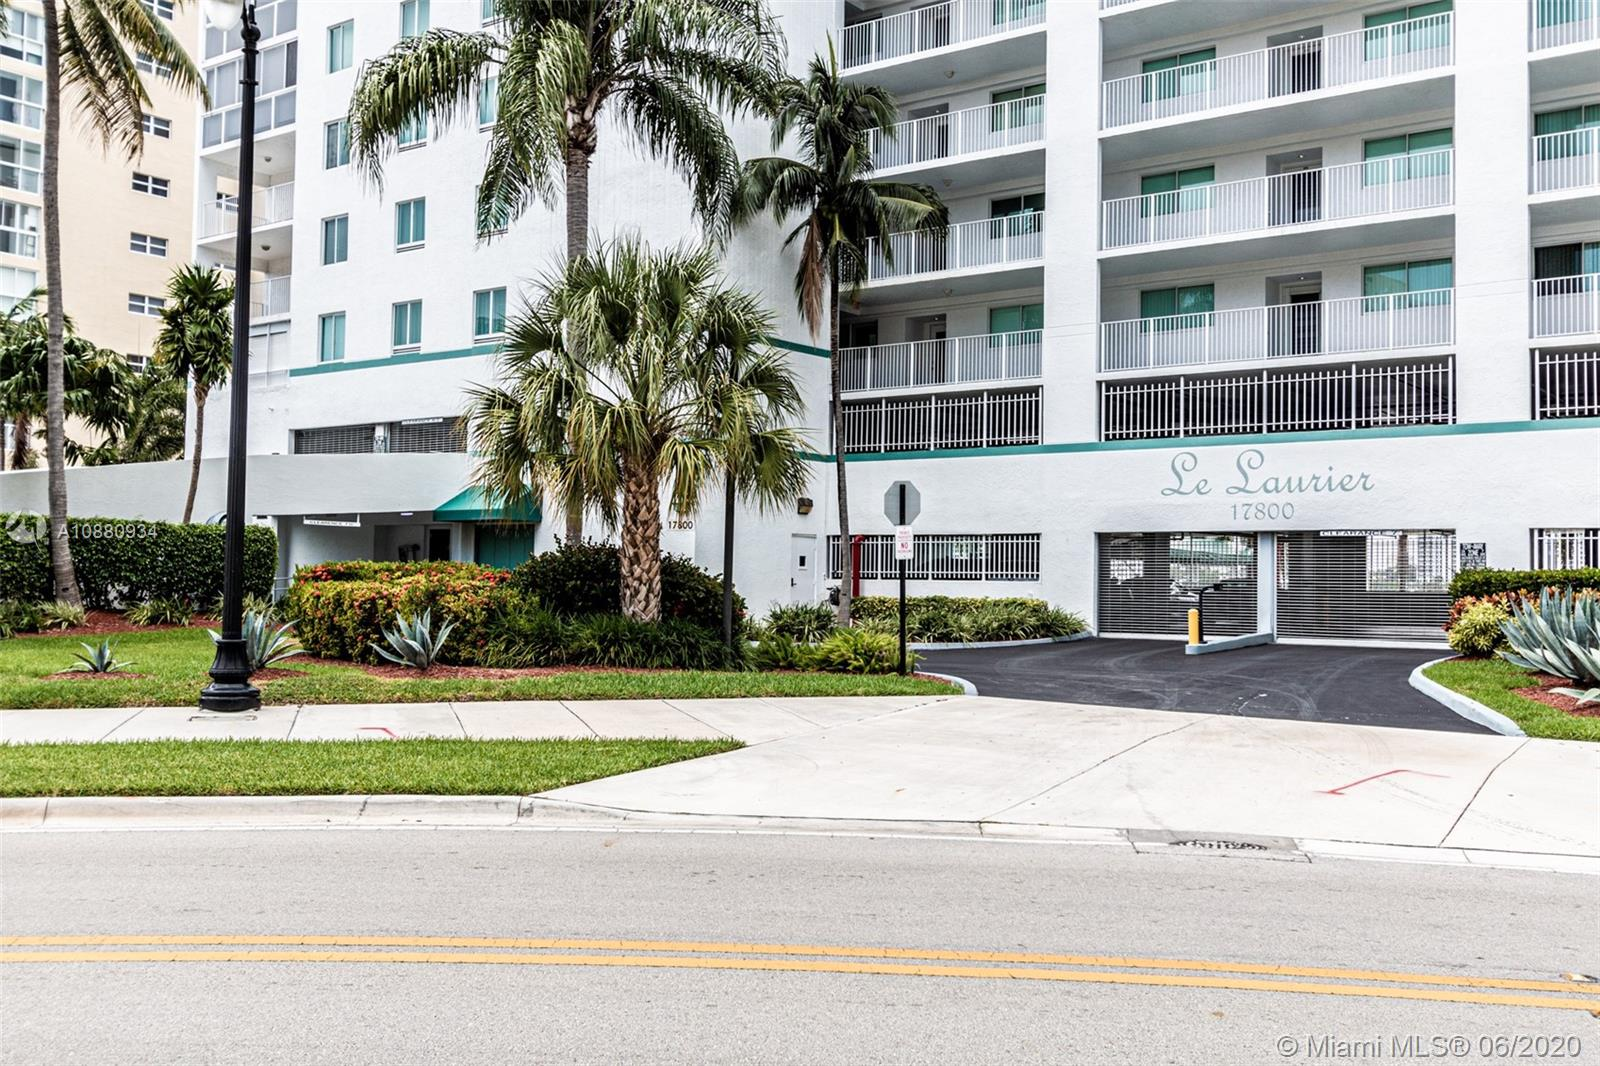 17800 N Bay Rd #602 For Sale A10880934, FL